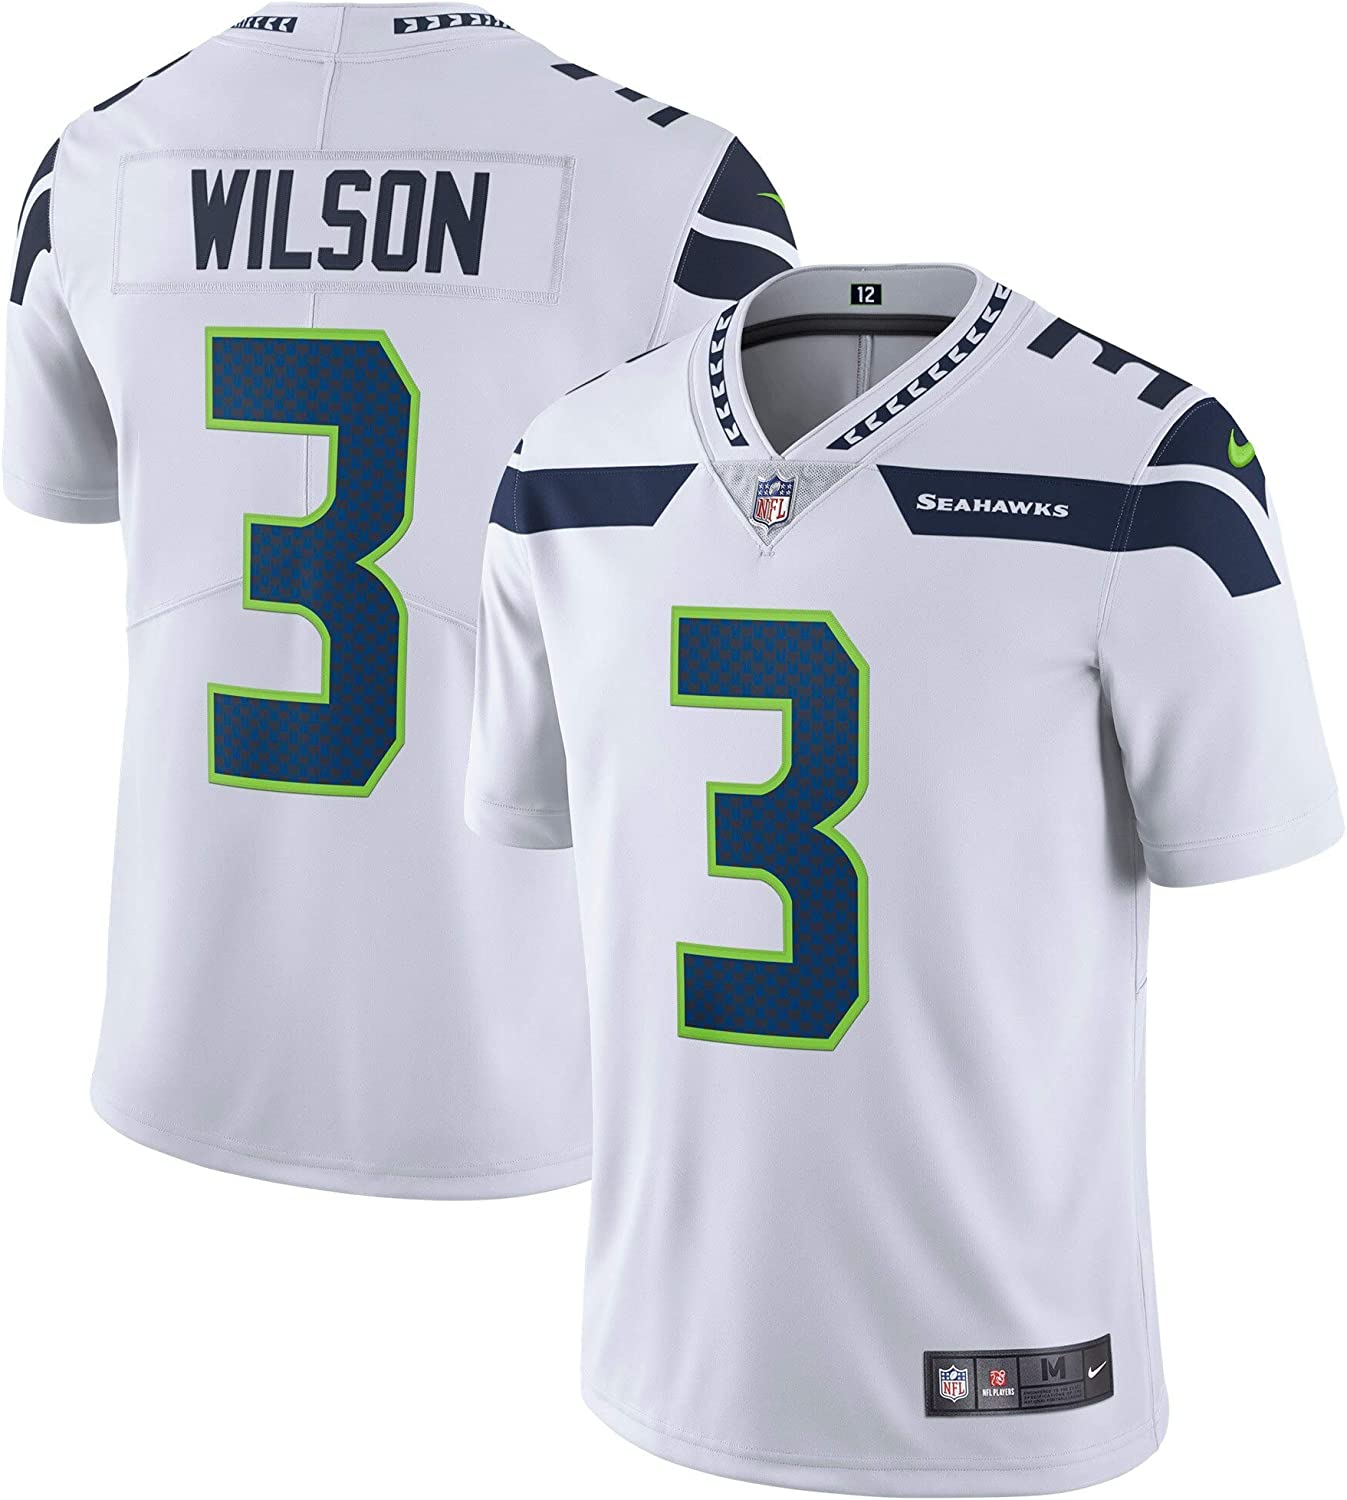 seahawks jersey youth xl